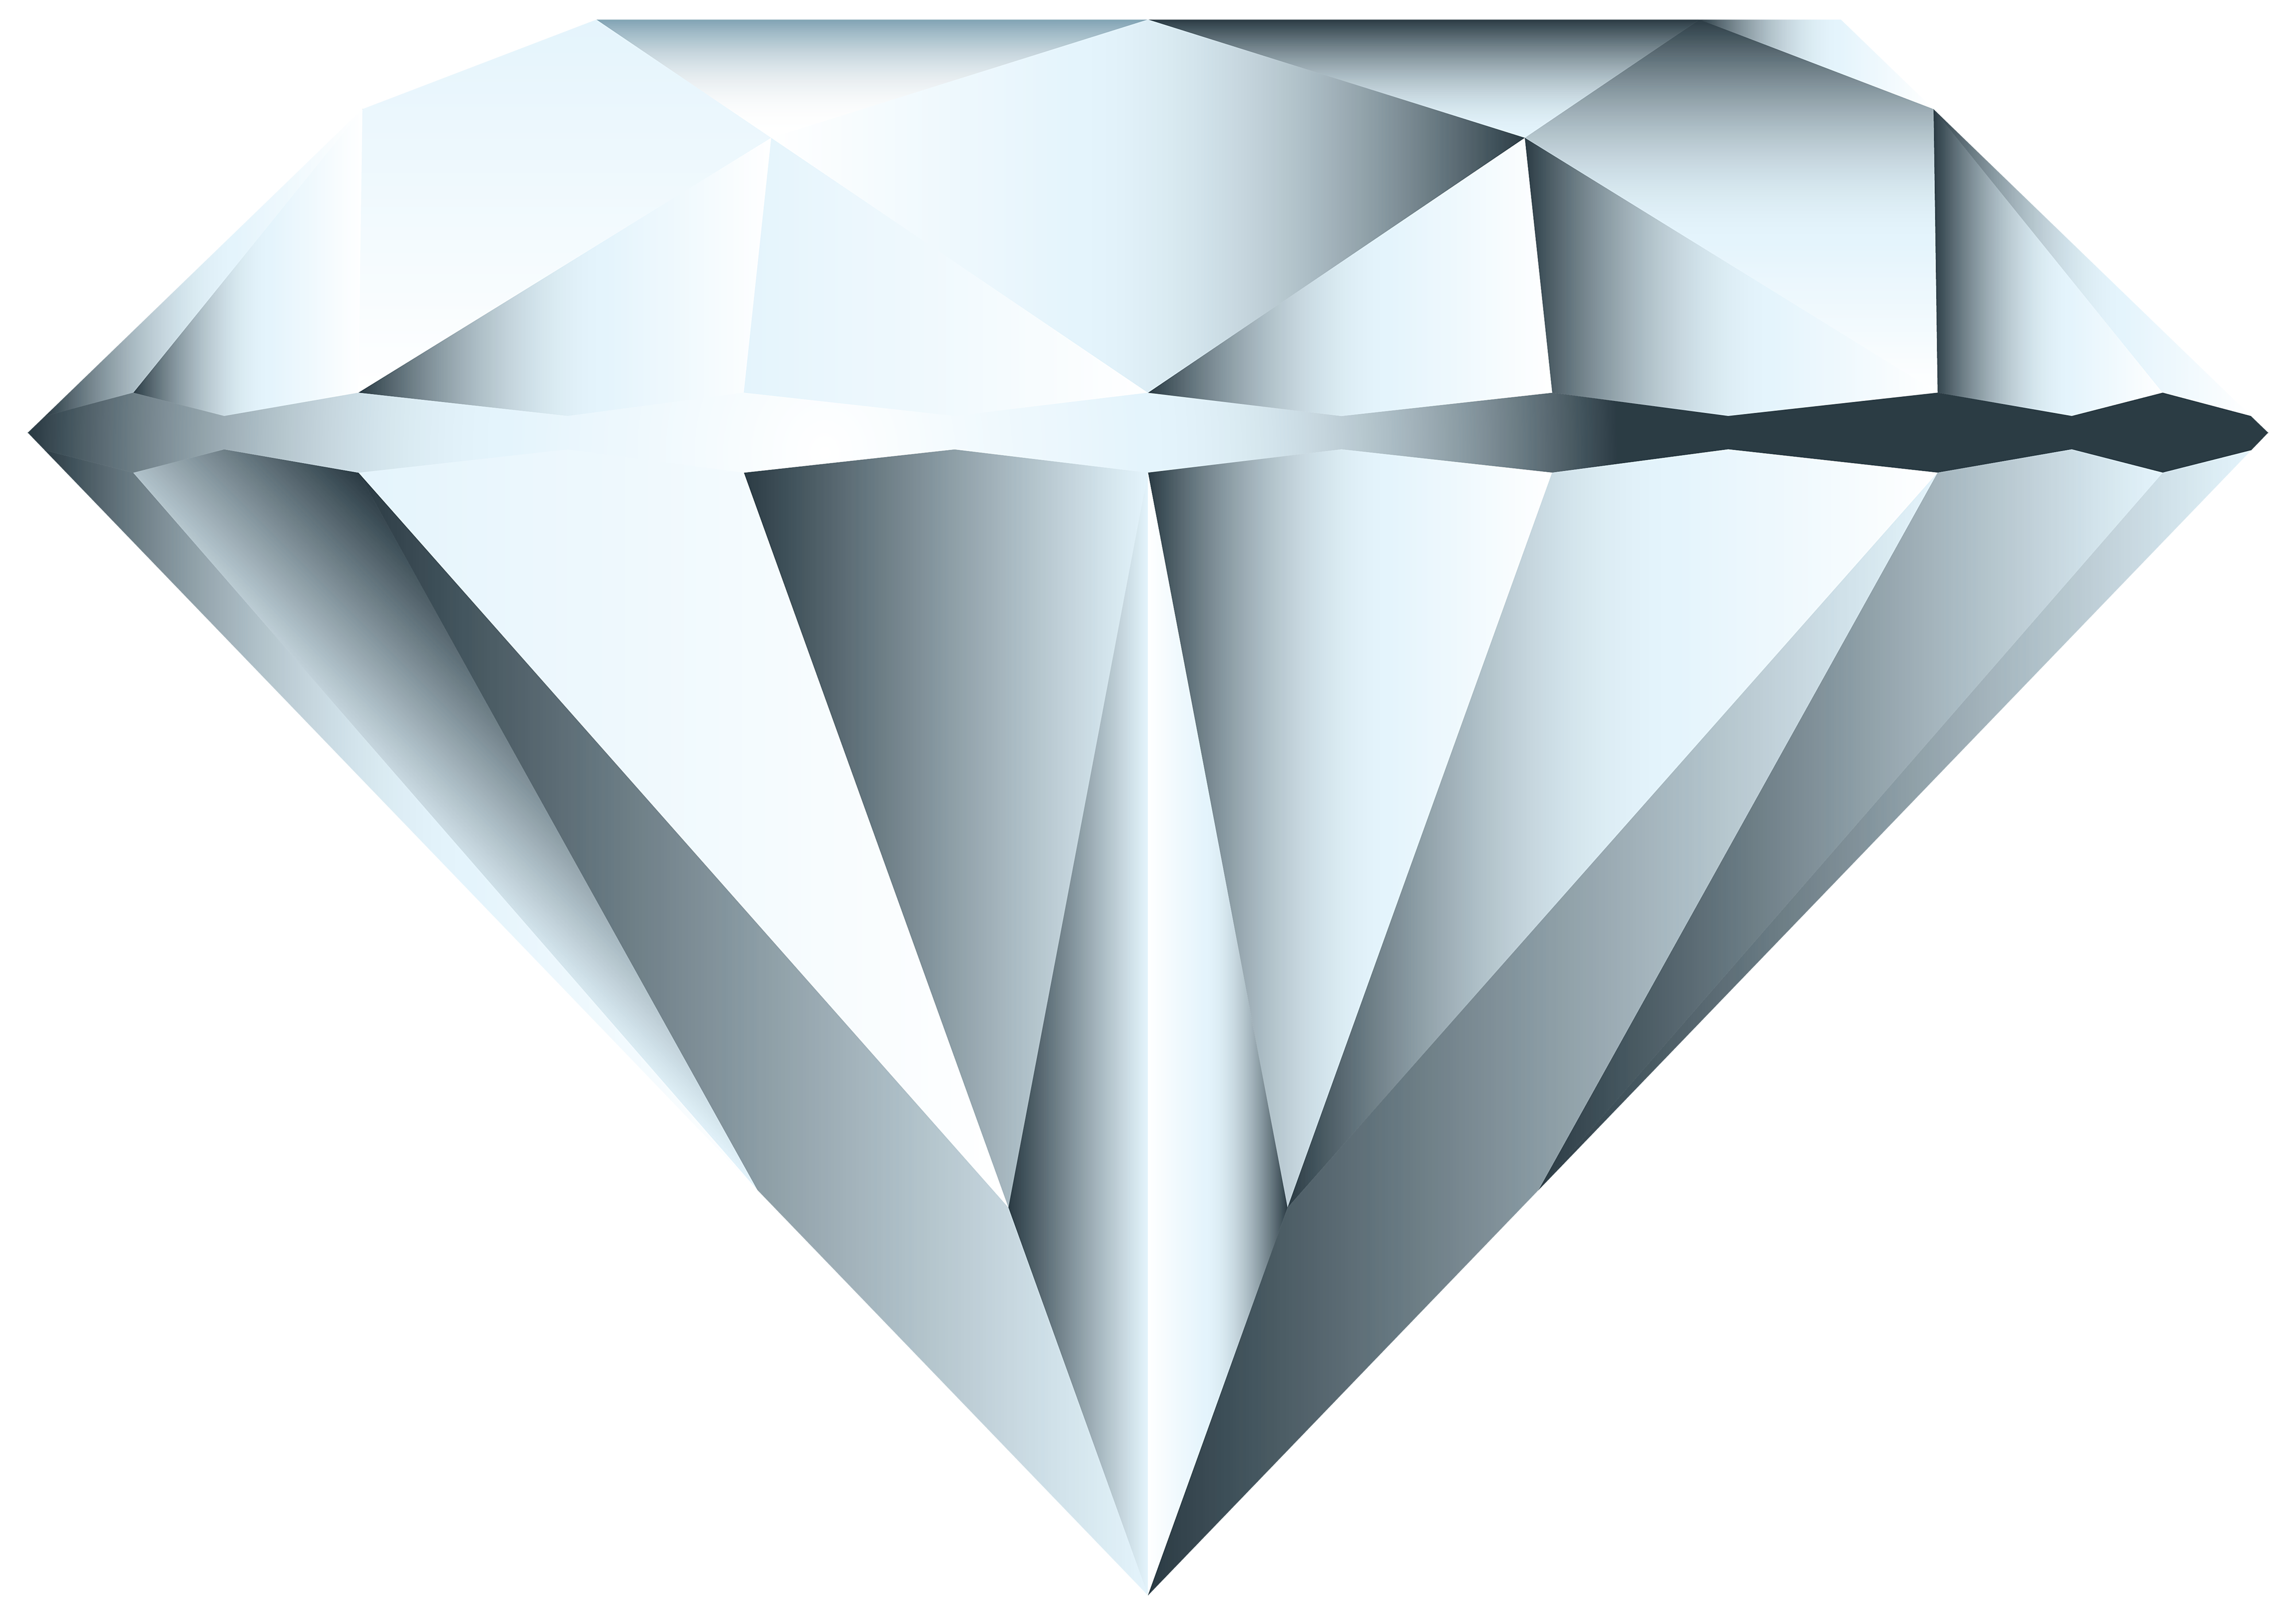 Artistic diamond clipart jpg freeuse download Free Diamond Blue Cliparts, Download Free Clip Art, Free Clip Art on ... jpg freeuse download